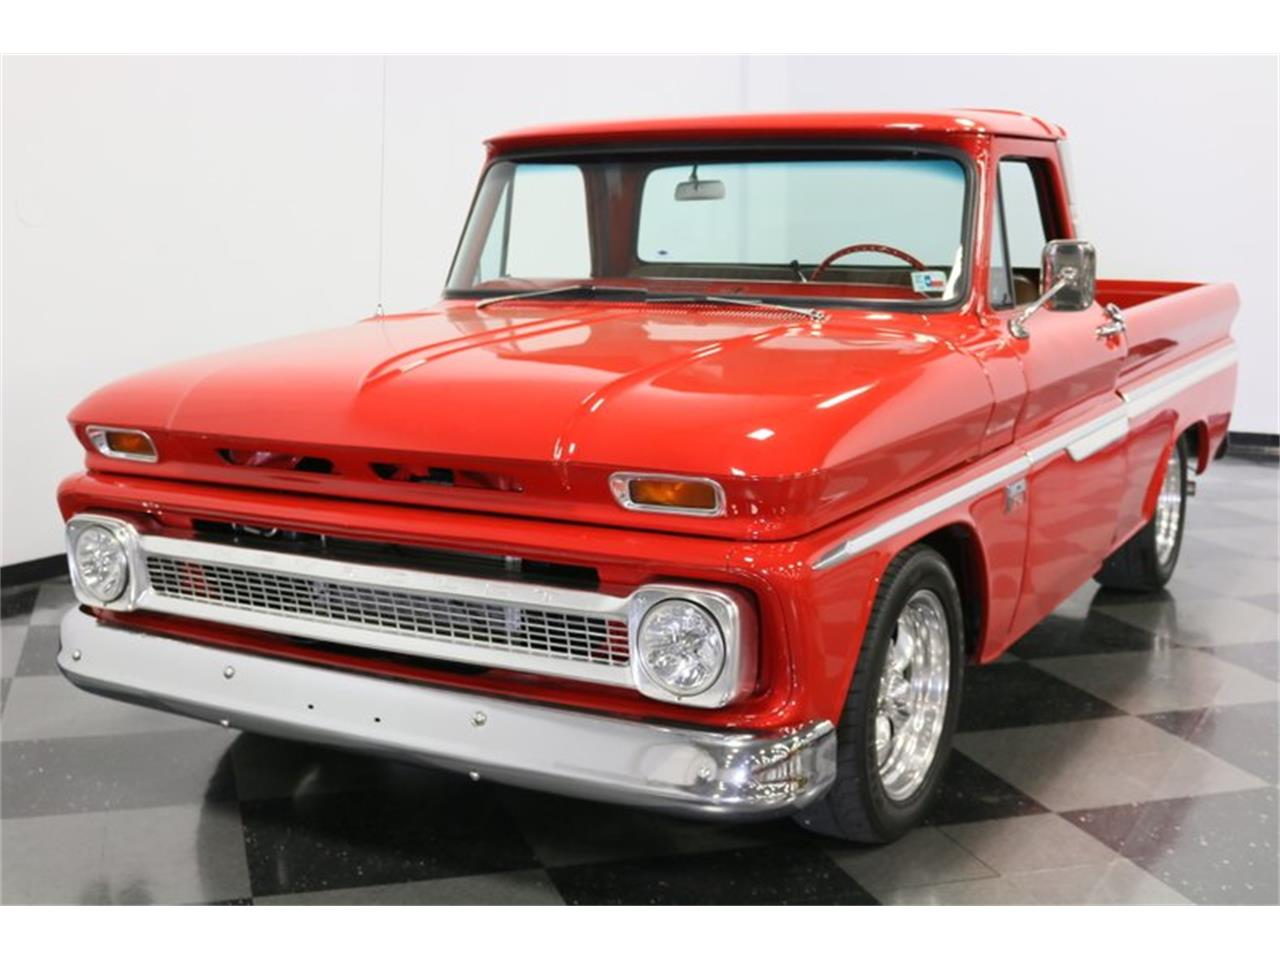 Large Picture of 1966 Chevrolet C10 located in Ft Worth Texas - $32,995.00 Offered by Streetside Classics - Dallas / Fort Worth - PVCV